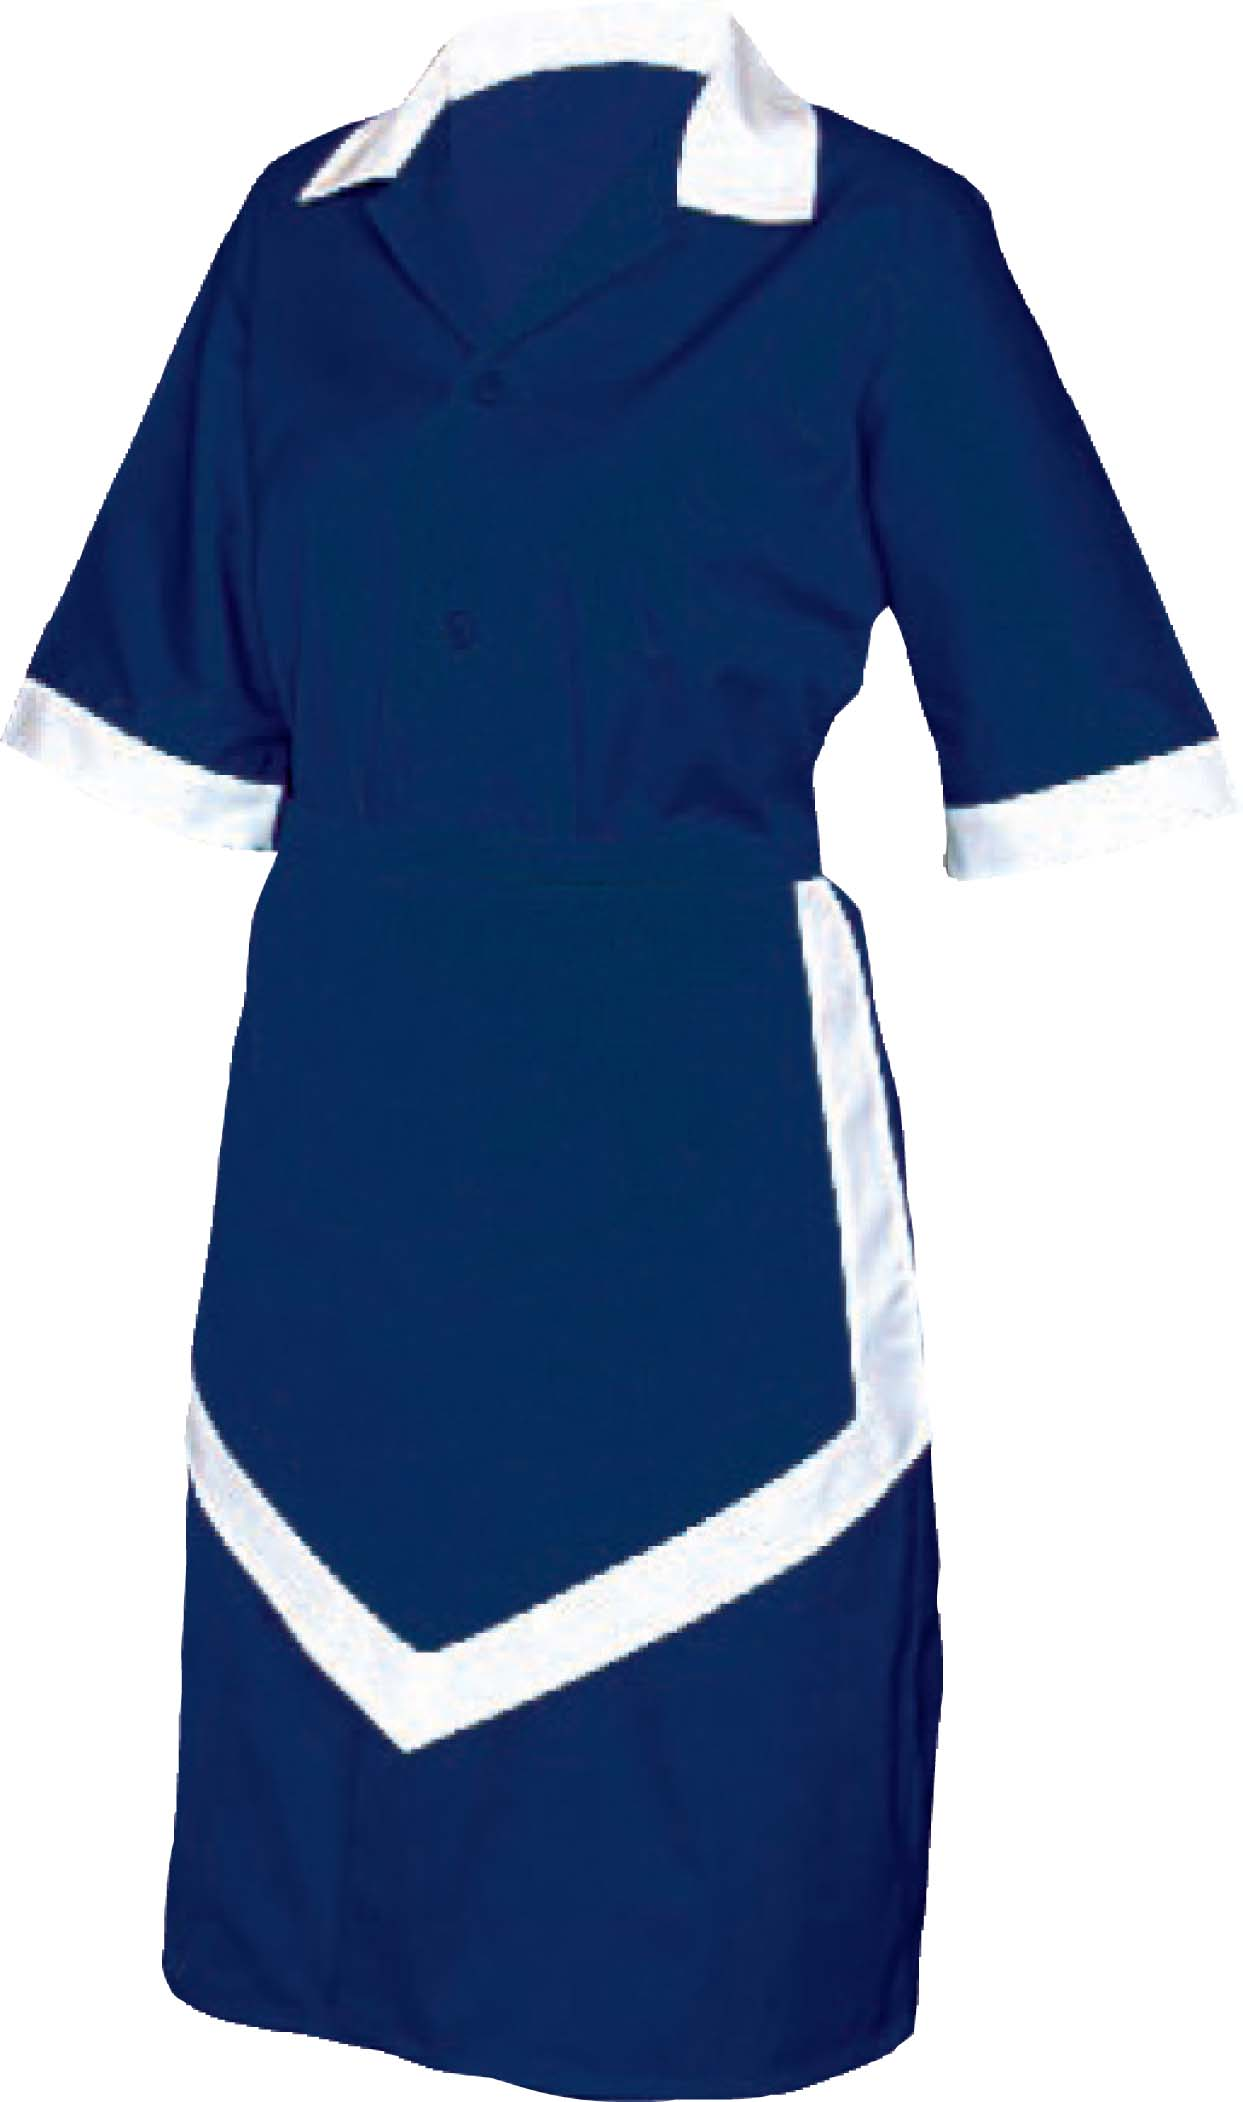 LADIES HOUSEKEEPING 3PC - NAVY AND WHITE - XX LARGE